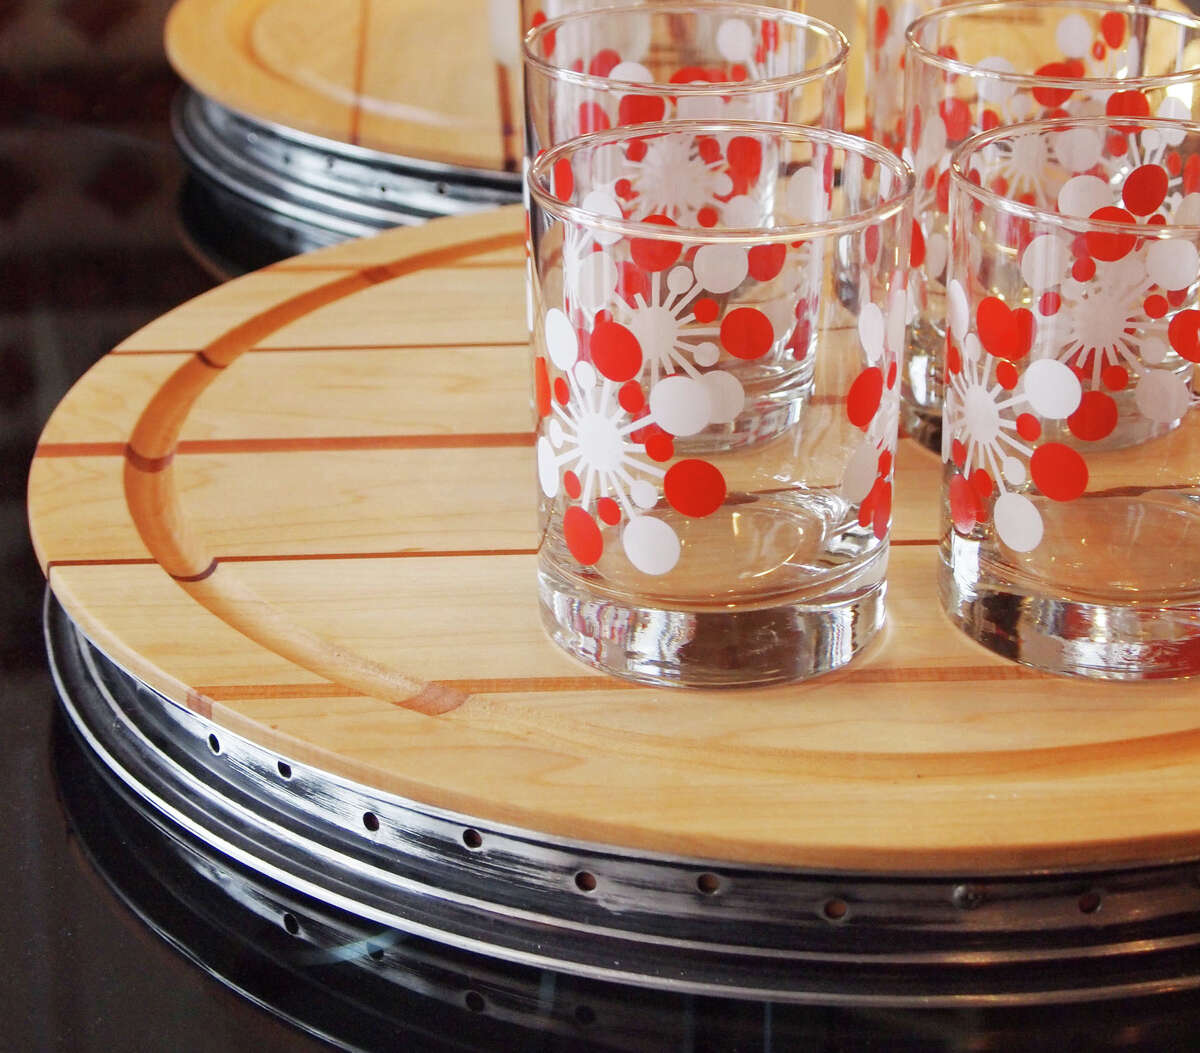 This photo provided by SOLO Home Design shows hip cutting boards from Solo Home Design created with bicycle rims and salvaged wood. (AP Photo/SOLO Home Design)